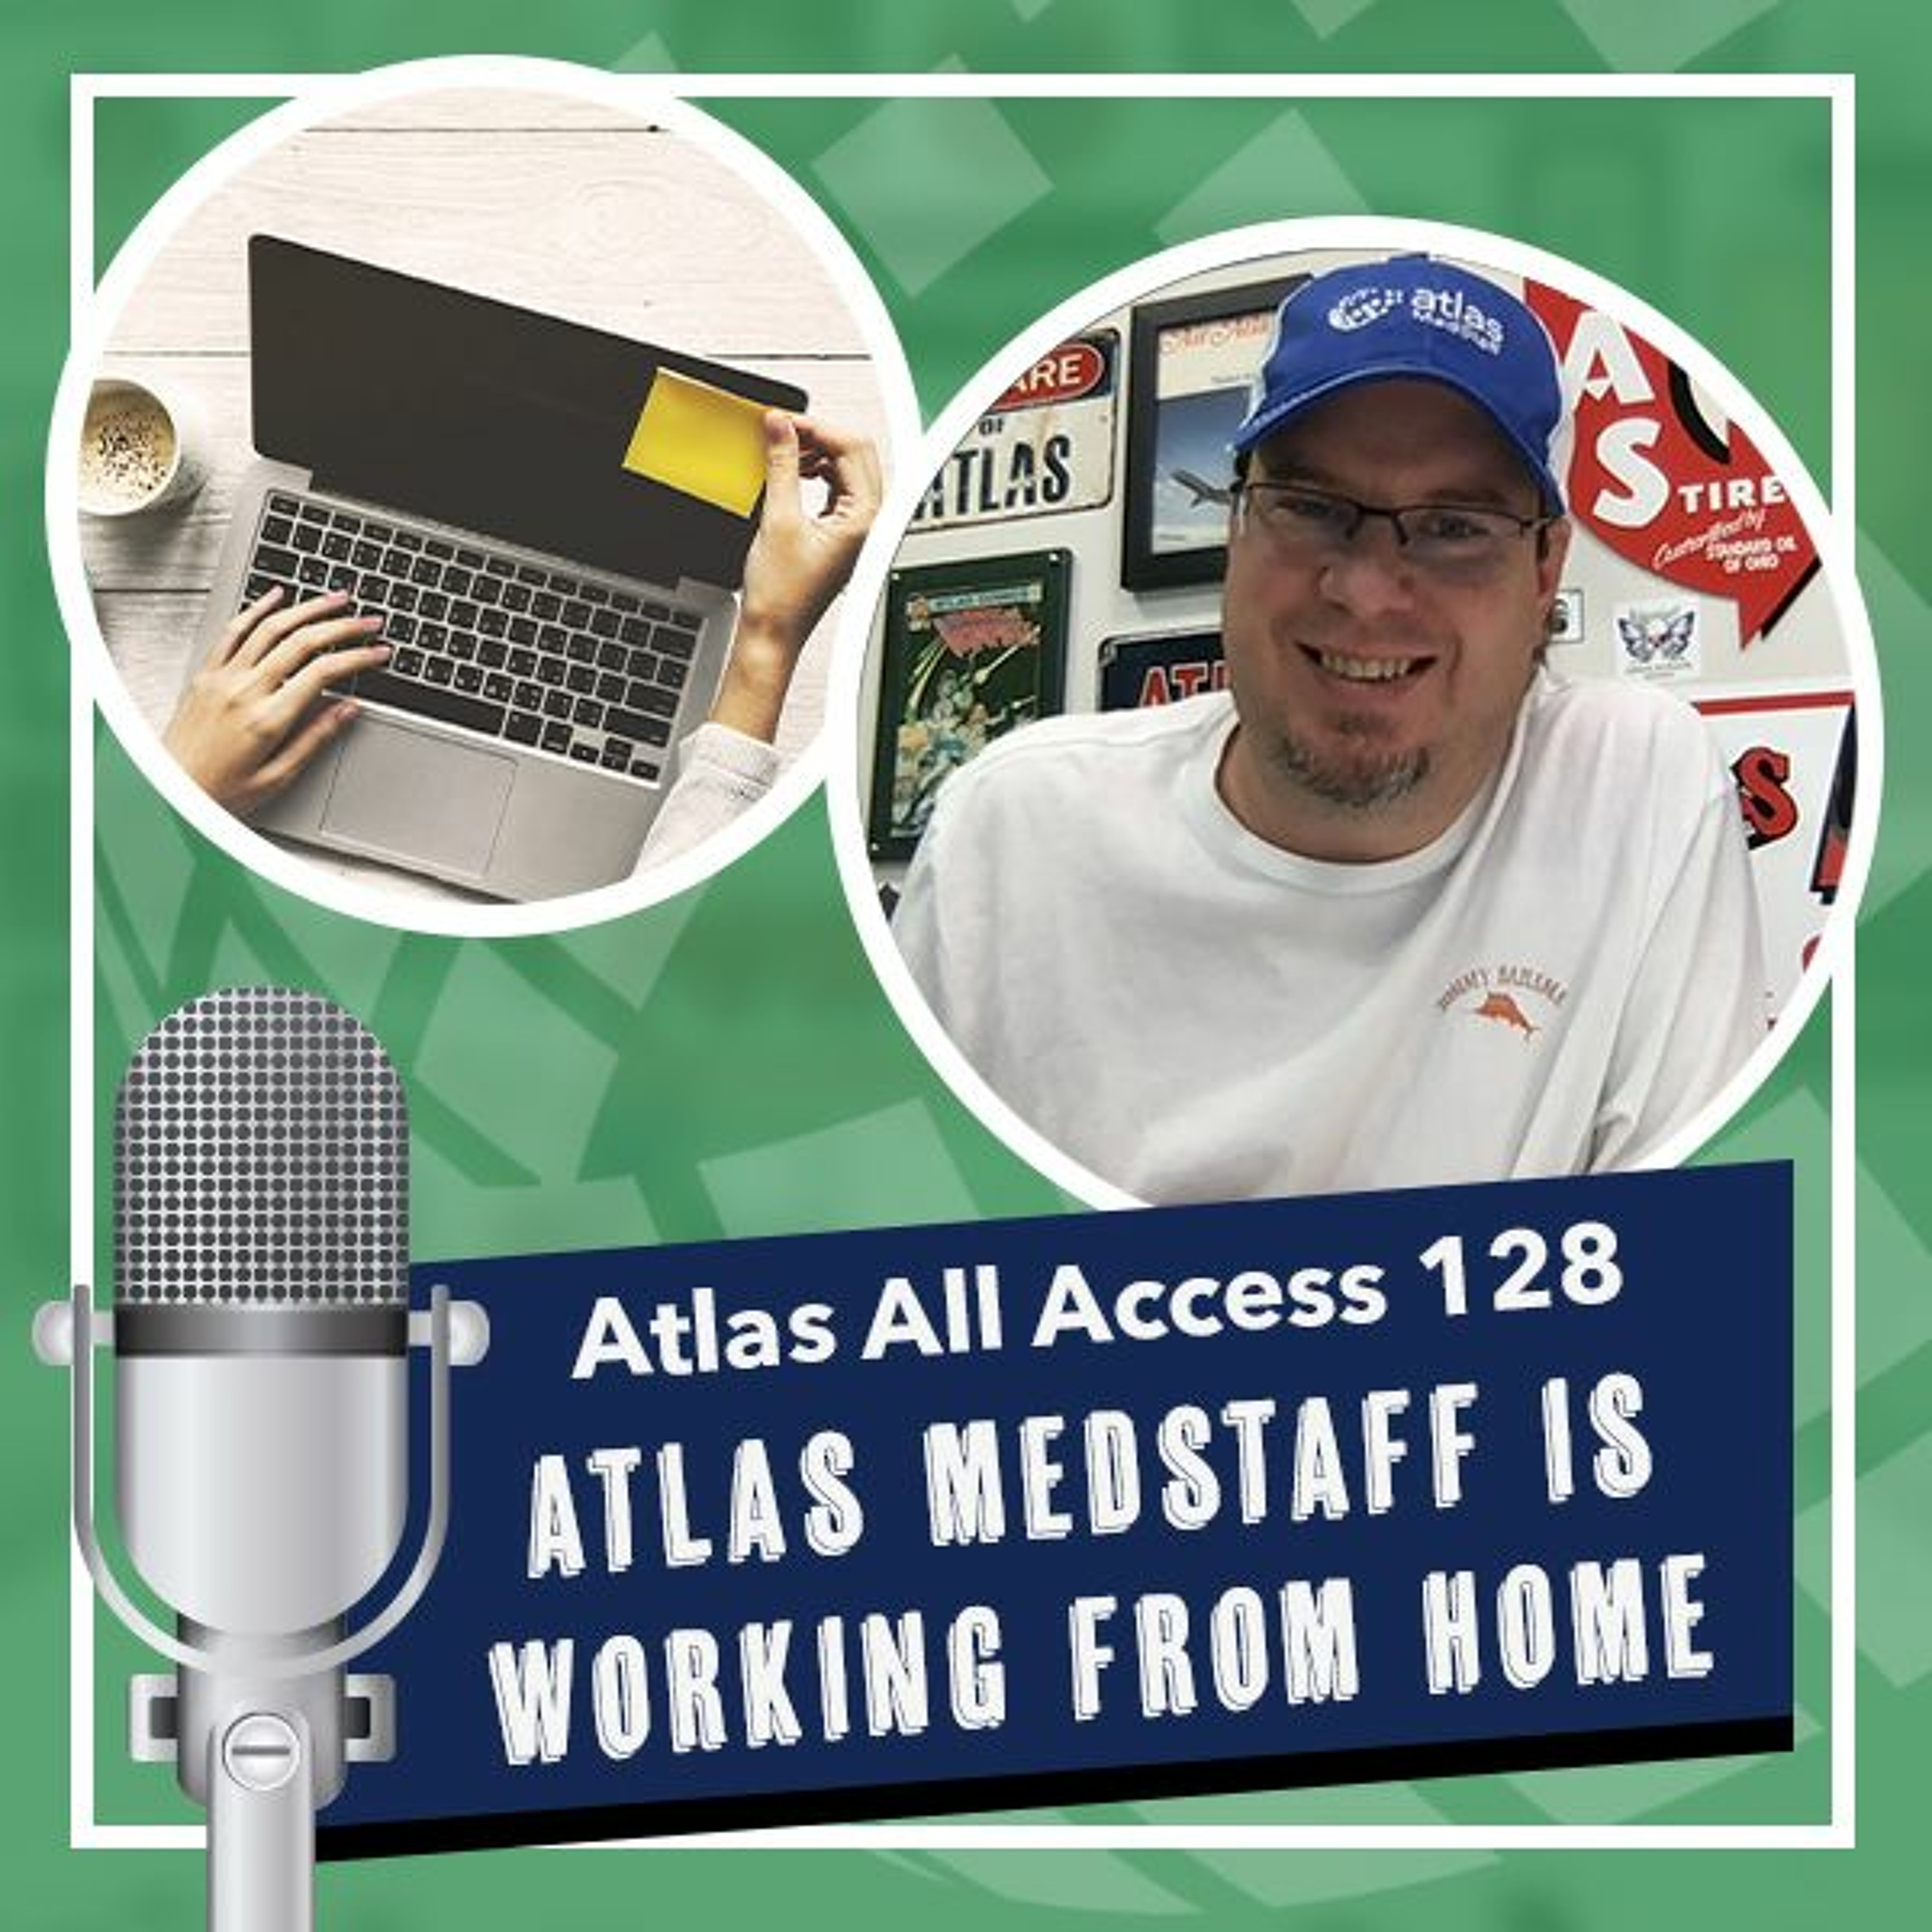 Atlas MedStaff is working from home for you, through all of 2020 - Atlas All Access 128